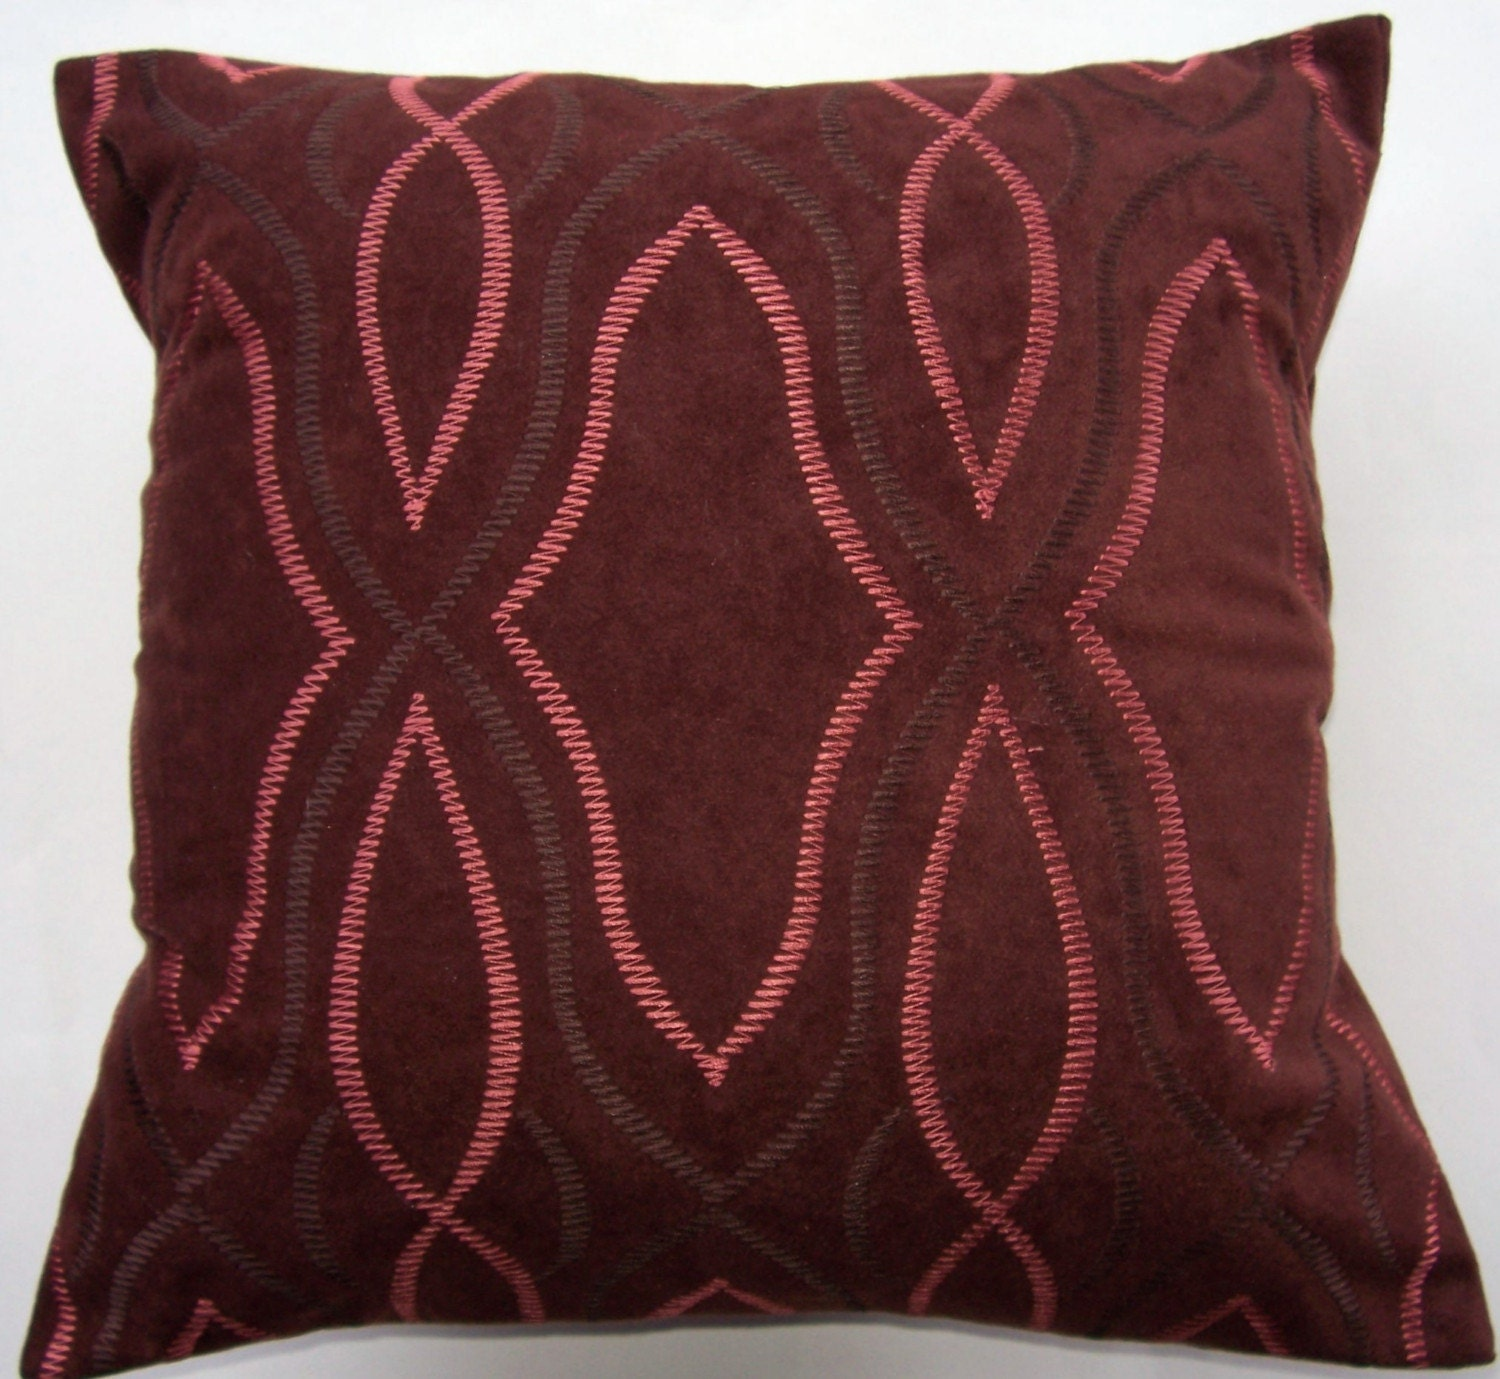 Throw Pillow Rust : Brown and Rust Throw Pillow Chocolate Suedecloth Cushion